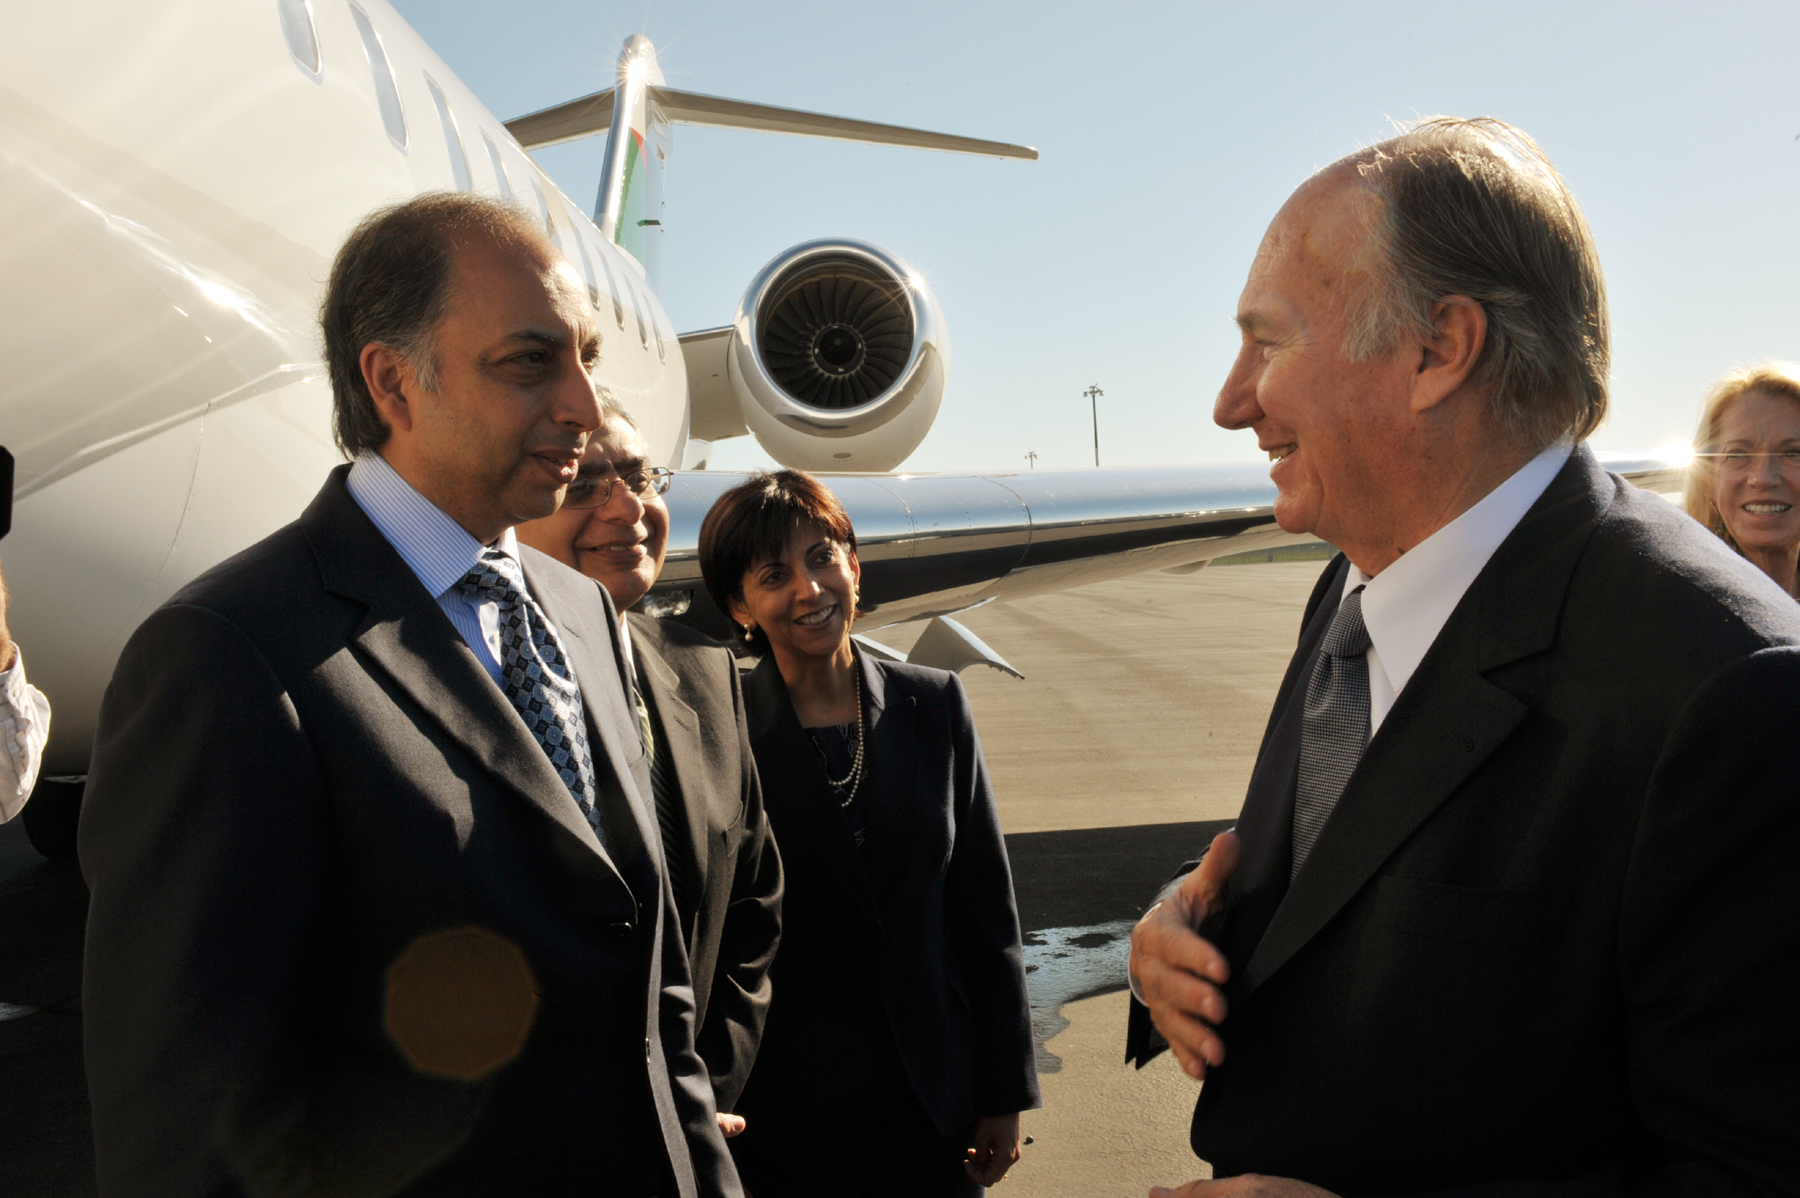 President Mahmoud Eboo and Vice-President Dr Barkat Fazal of the Ismaili Council for the United States, and President Shaheen Kassim Lakha of the Ismaili Council for the Western United States, bid farewell to  Mawlana Hazar Imam as he departs Sacramento. Photo: Zahur Ramji